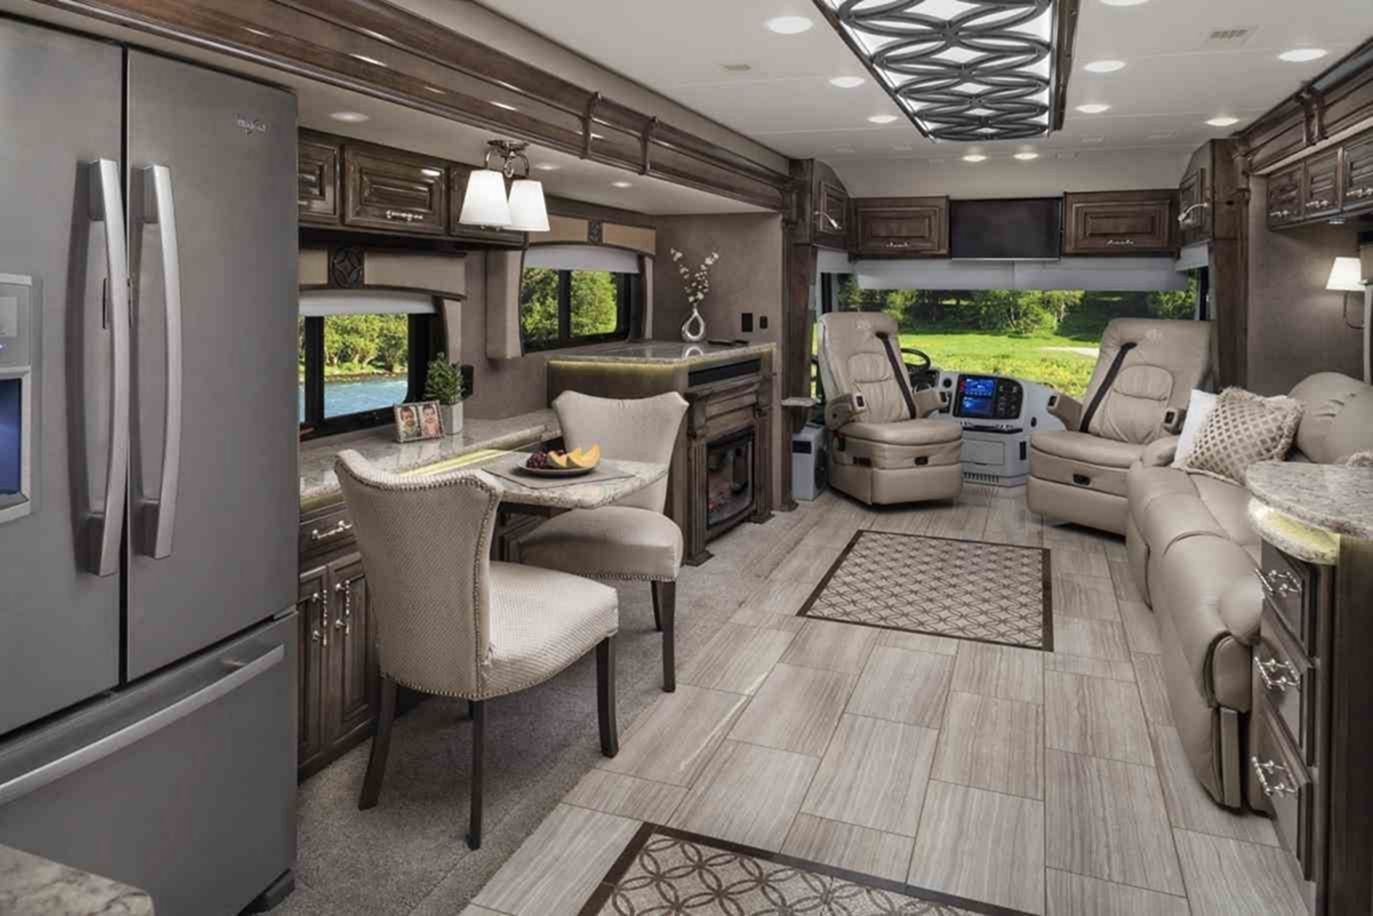 33 Luxurious Rv Interior Ideas For Comfortable Outdoor Holiday